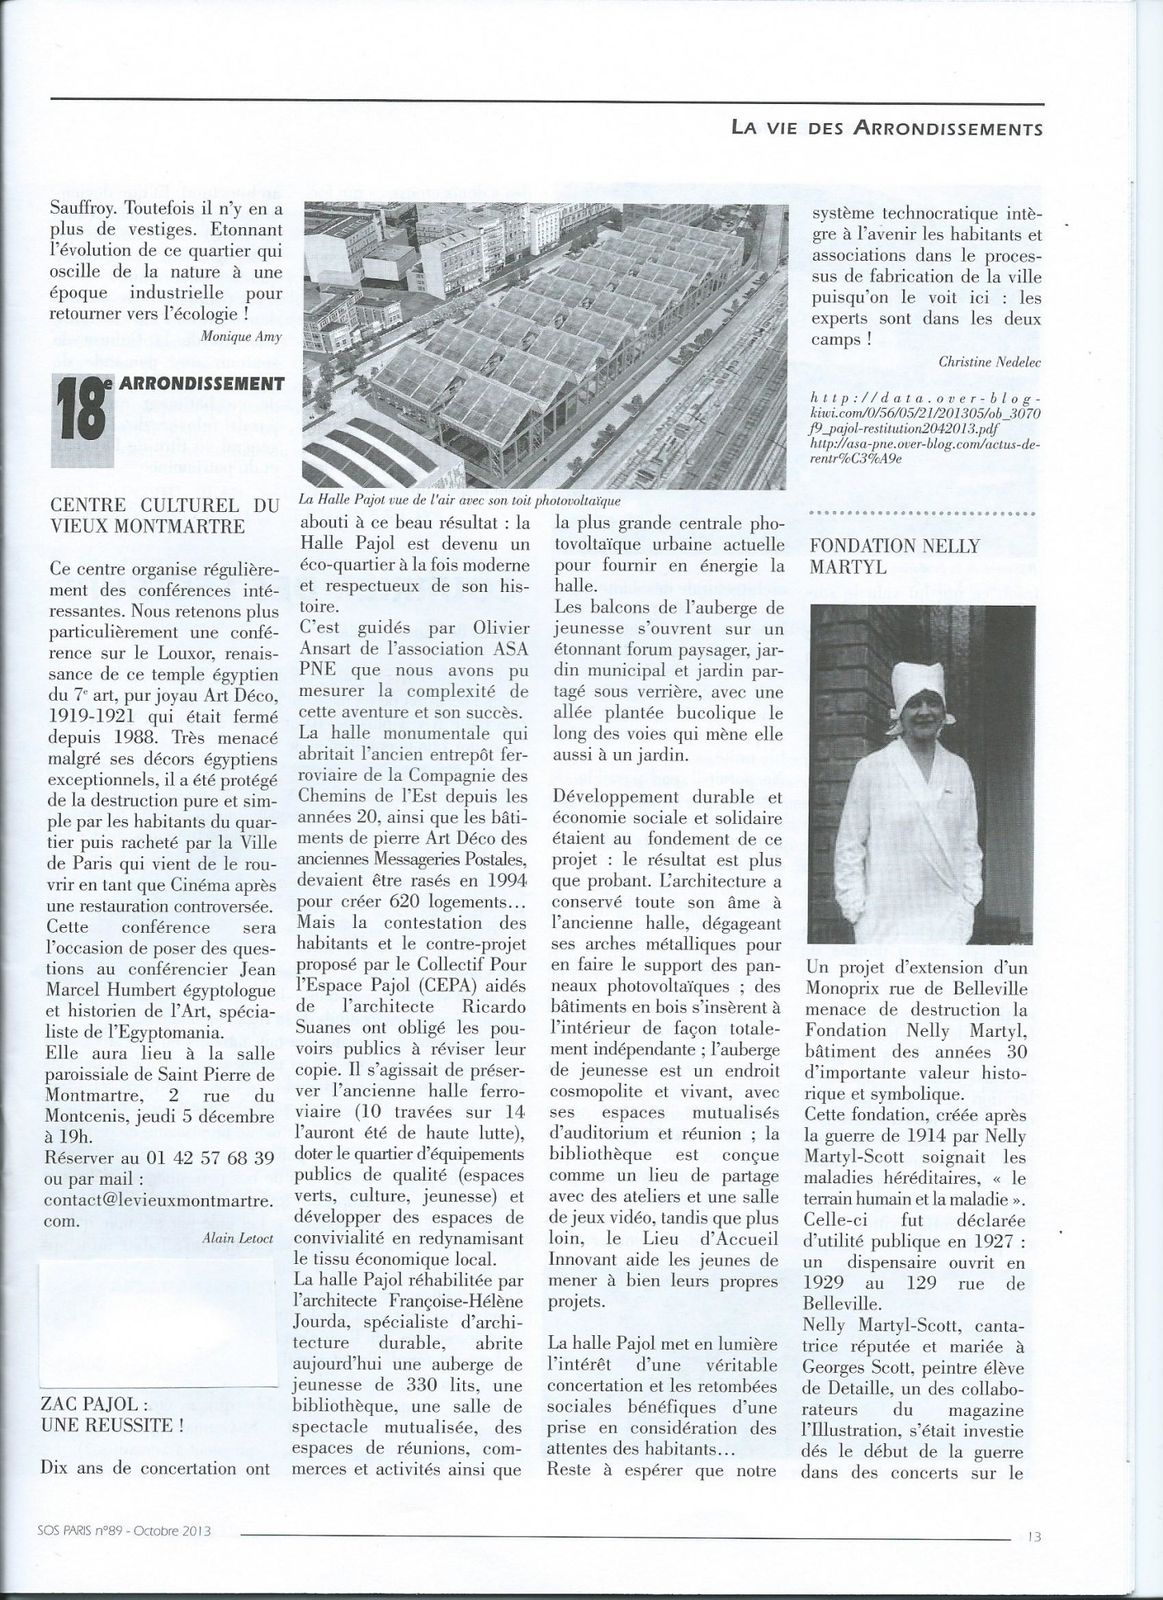 Pajol : article de SOS PARIS dans le bulletin d'octobre 2013